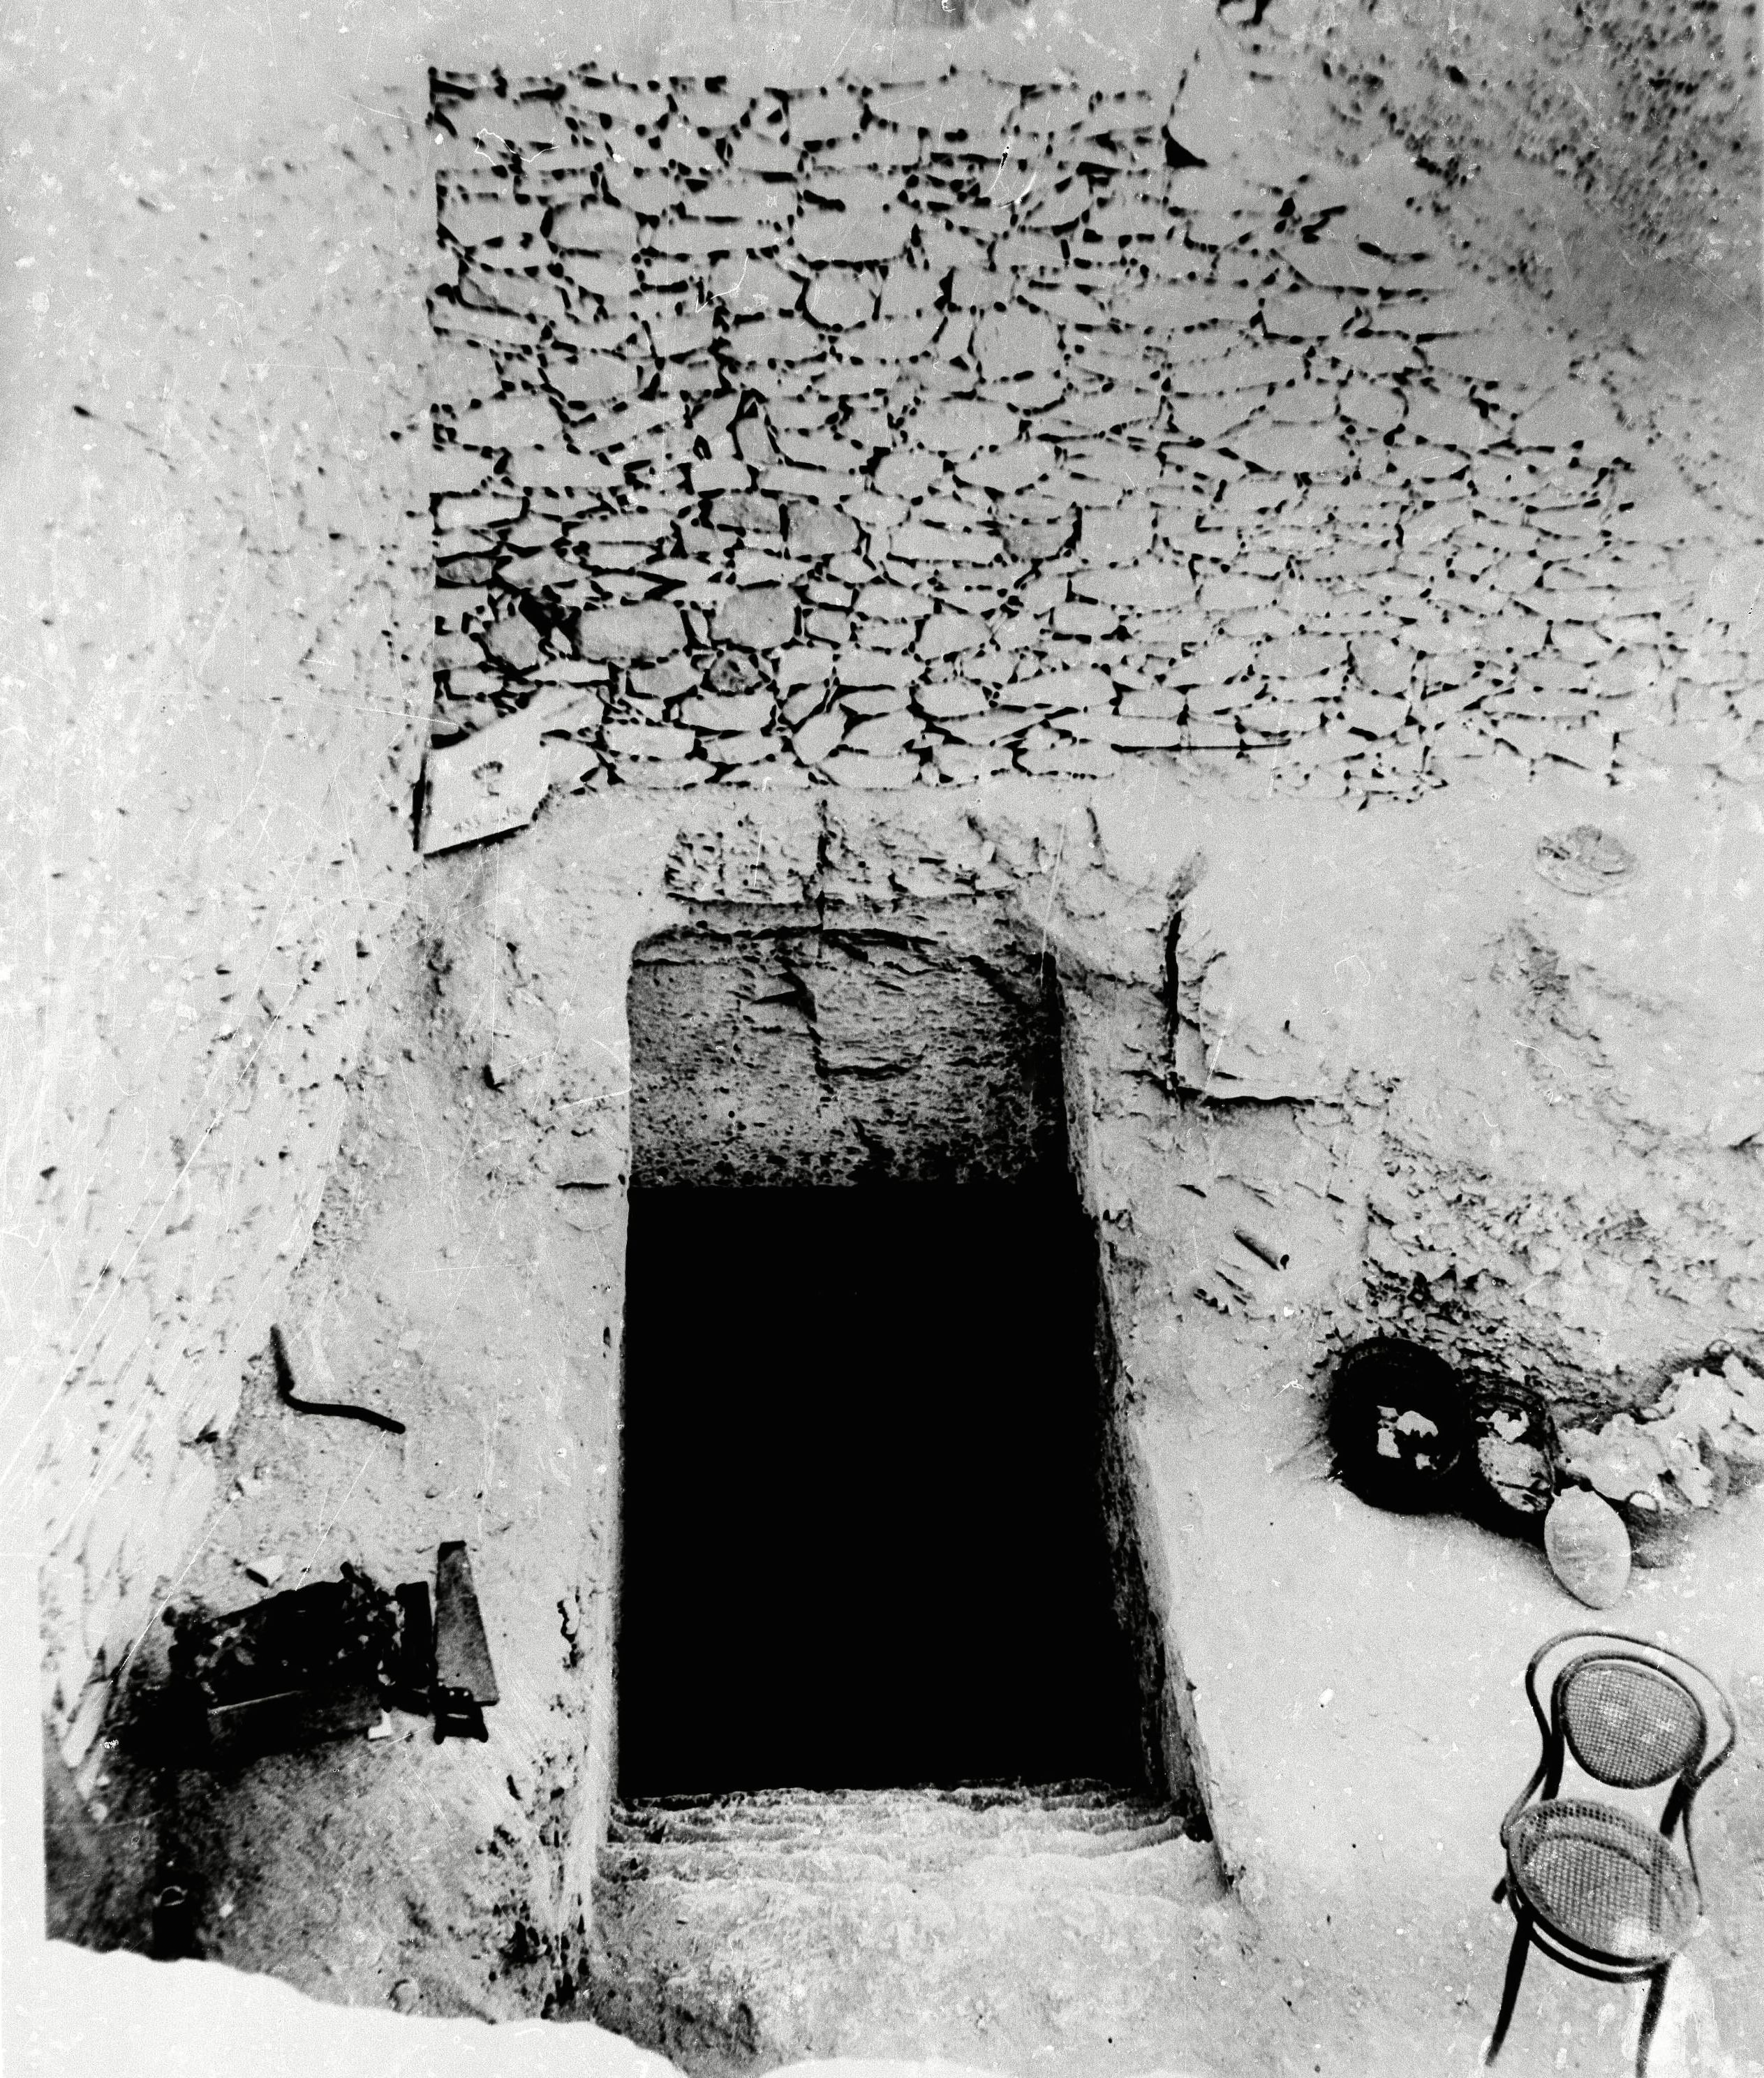 of the tomb of the King Tutankhamun, who ruled Egypt from 1358 to 1350 B.C.E., seen, in Luxor, Egypt Treasures Of King Tut 1922, Luxor, Egypt